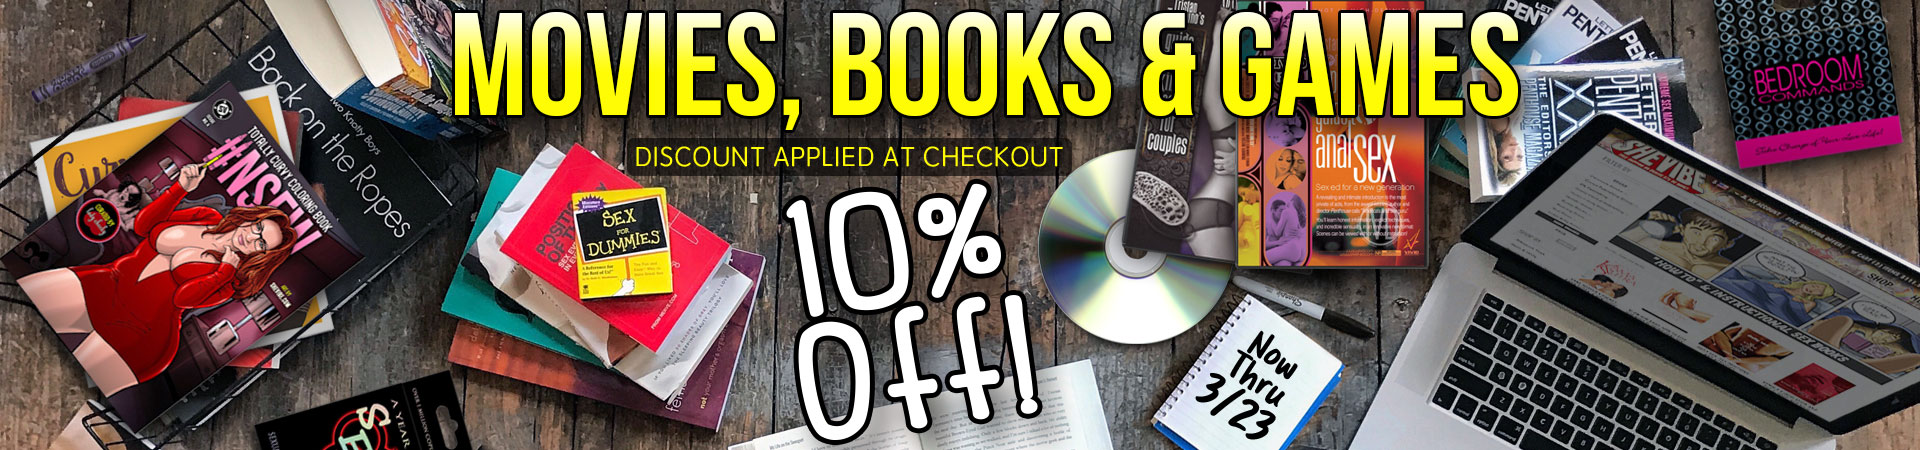 10% off Movies, Books & Games - Now Thru 3/3 - Discount Applied At Checkout